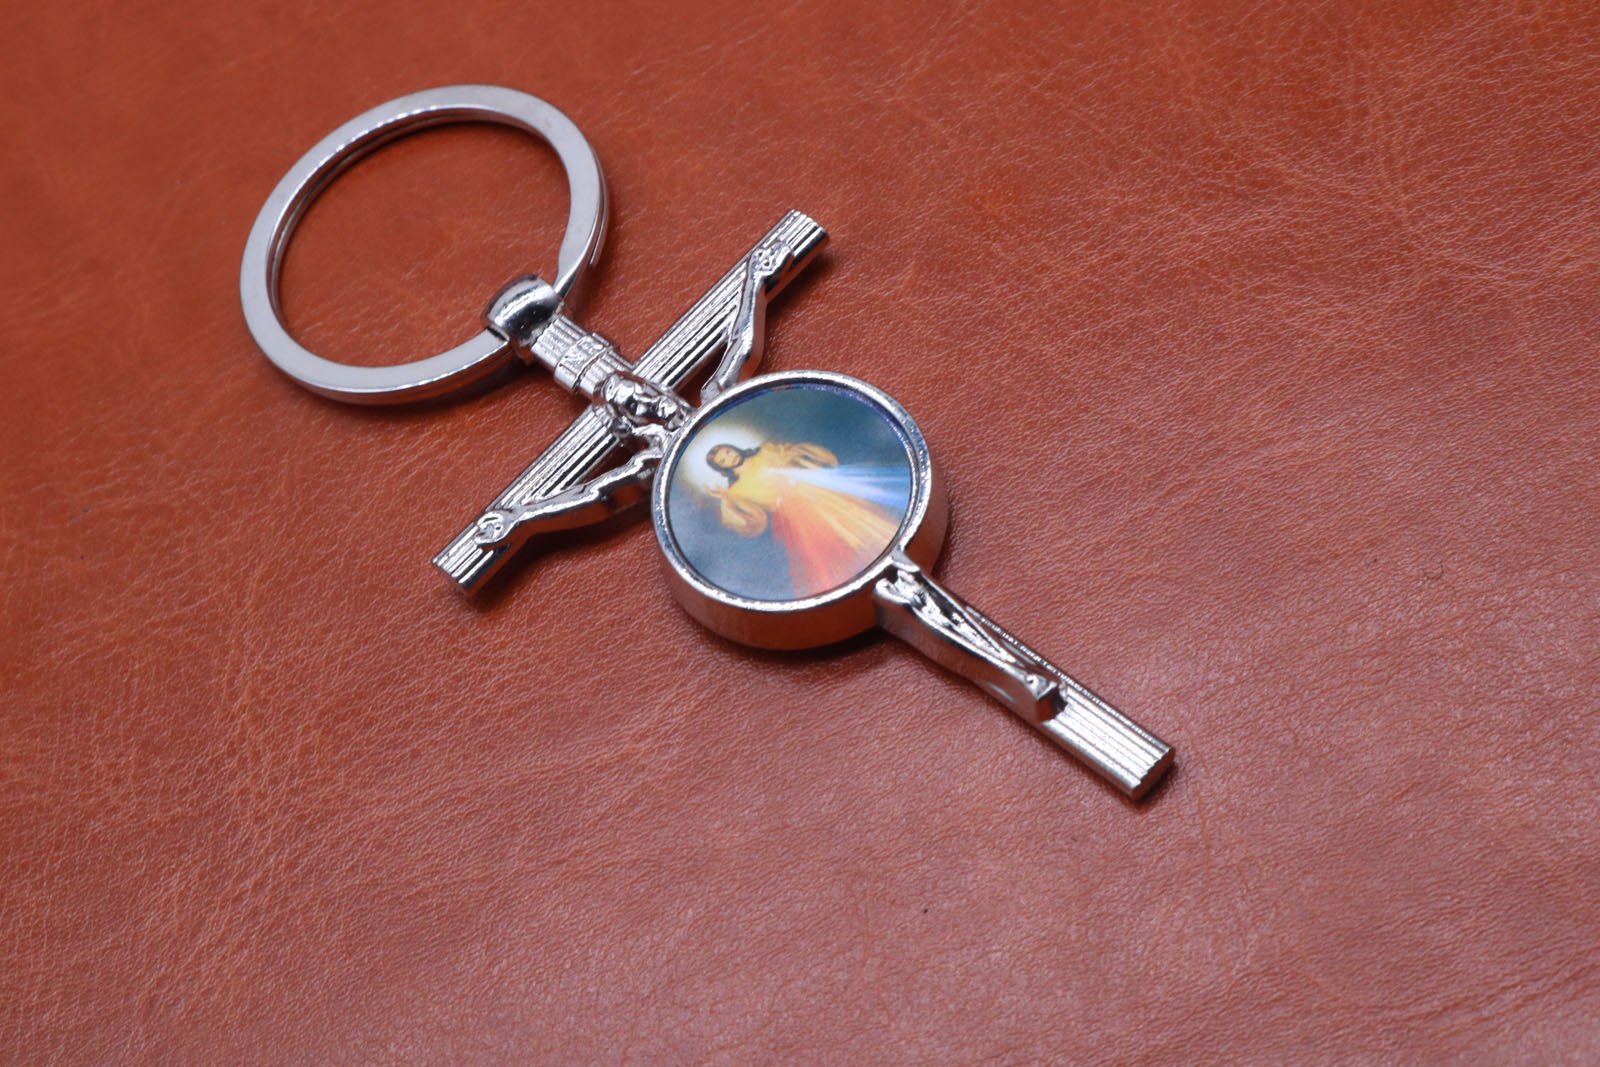 Classic Silver Charm Jesus Christian key ring key car key ring, handbag, gift accessories free shipping